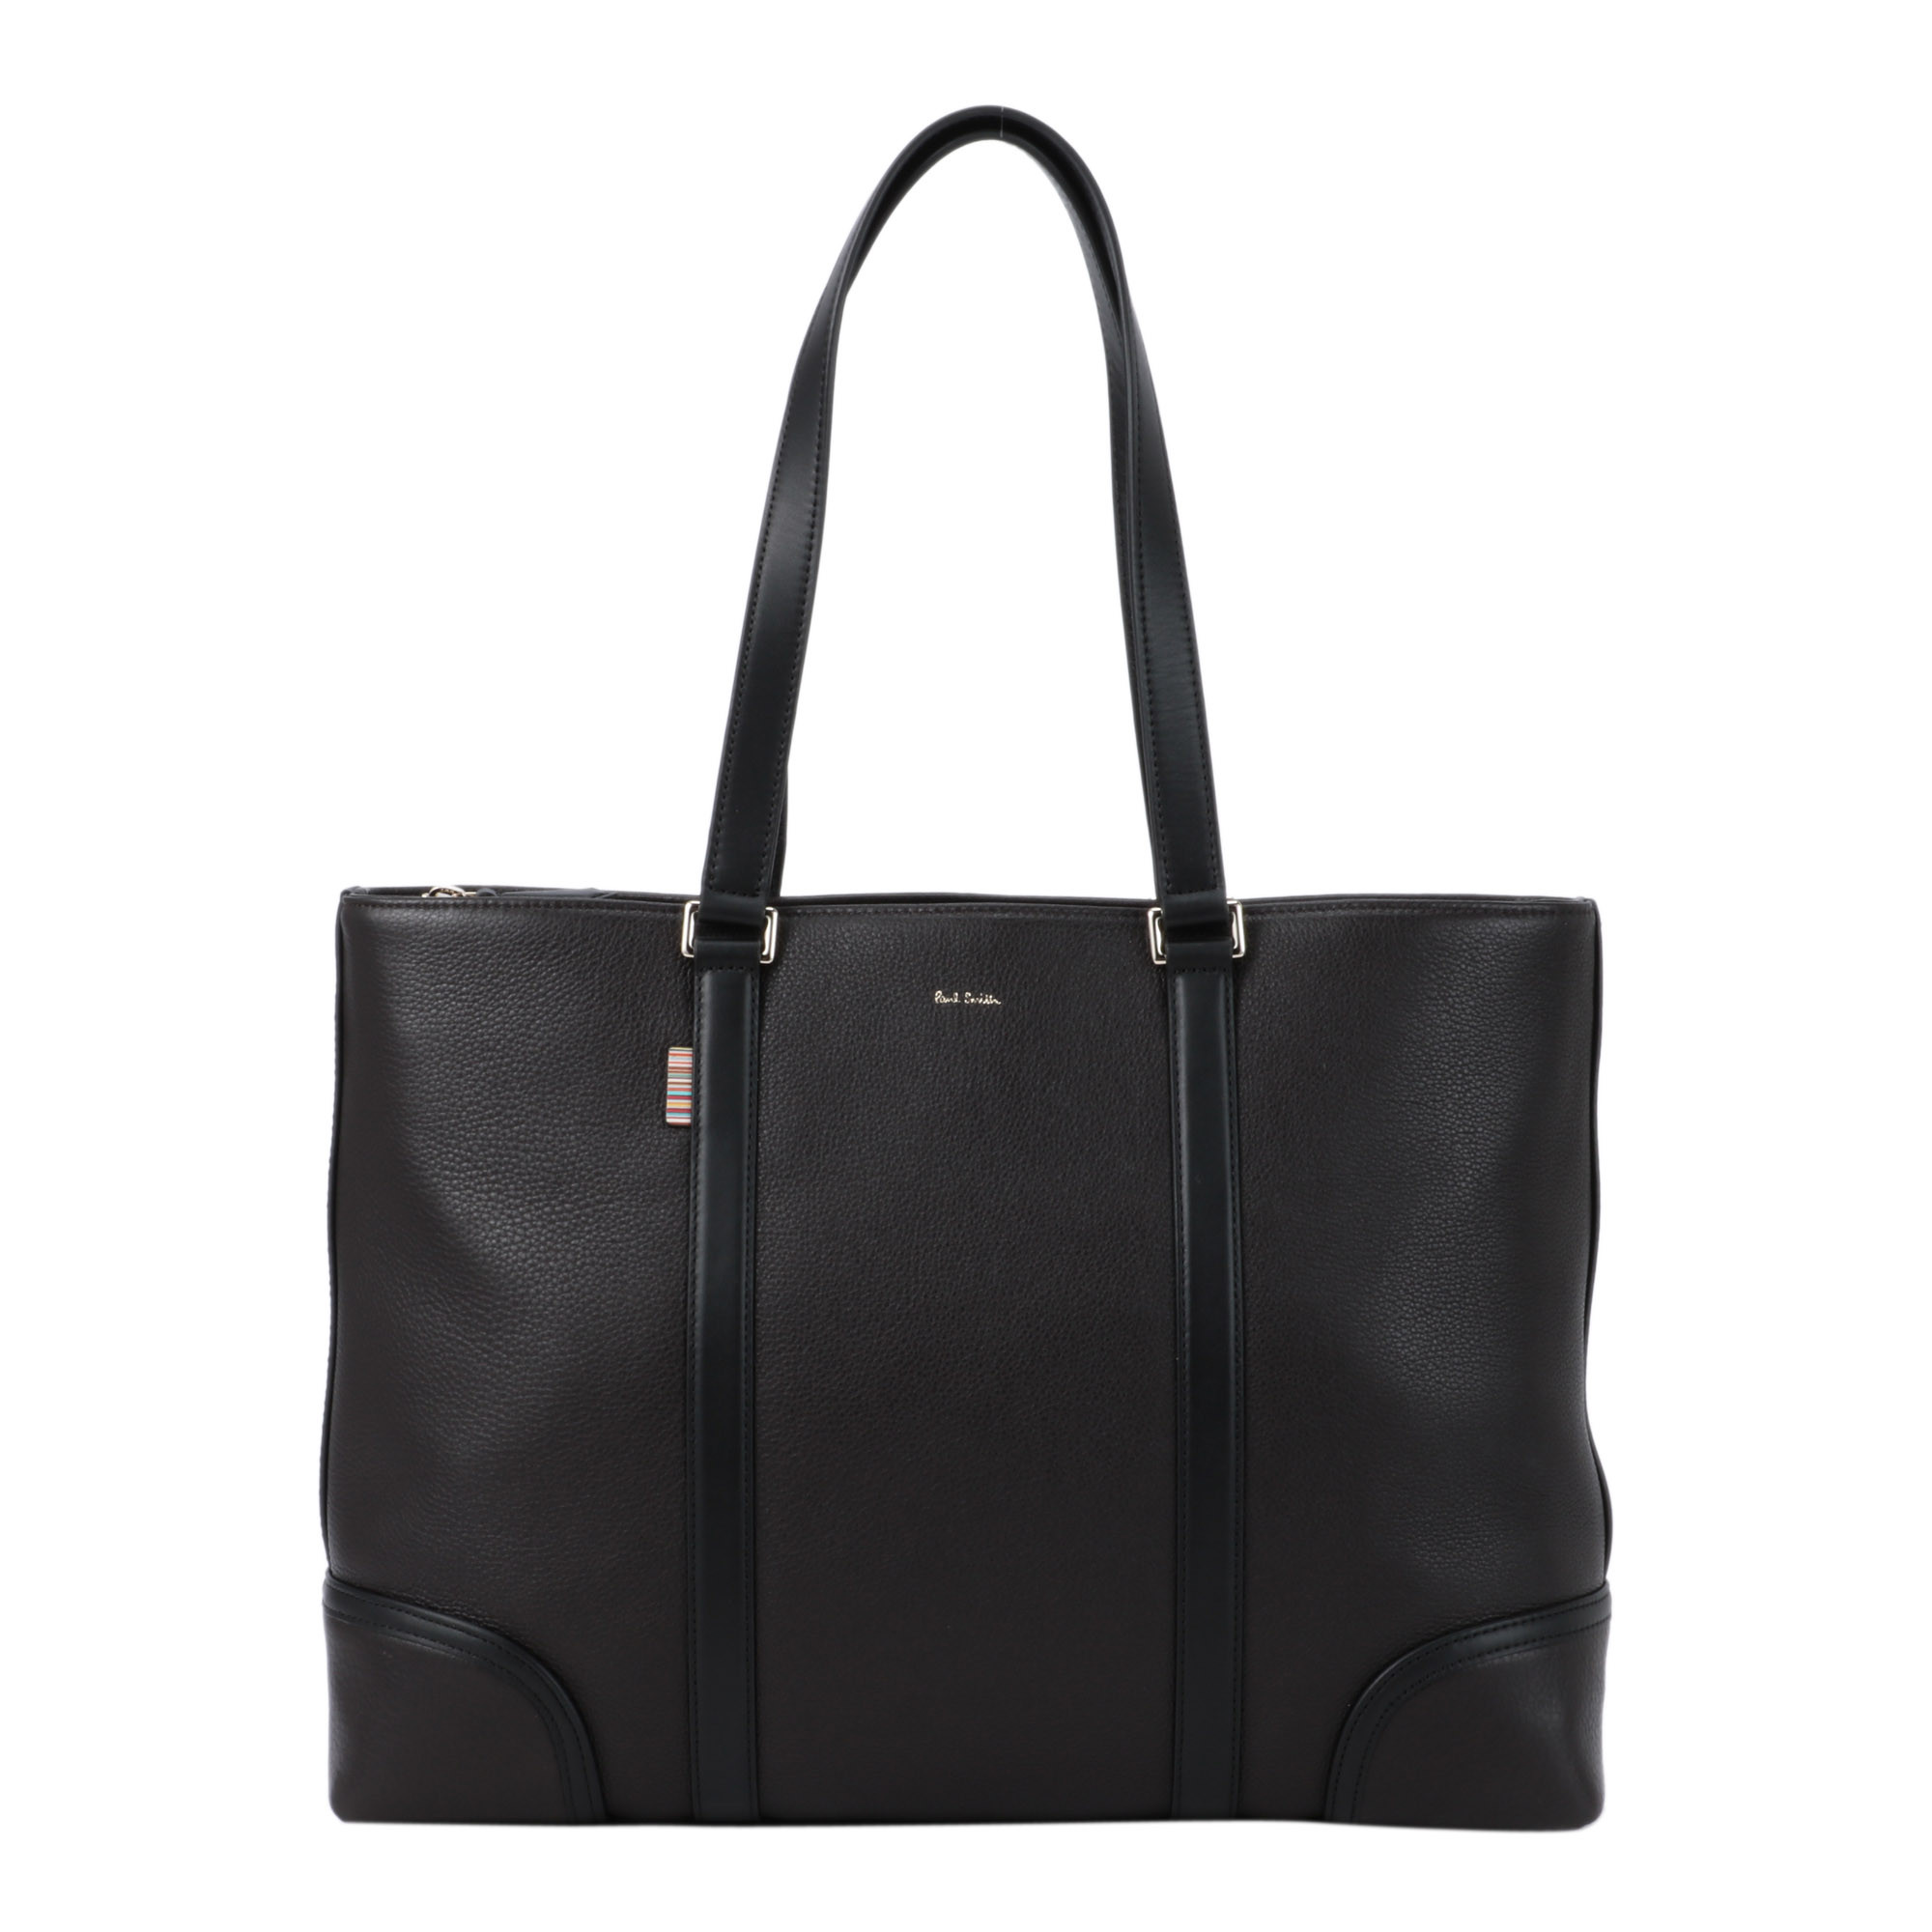 CITY TRAVEL LEATHER TOTE BAG